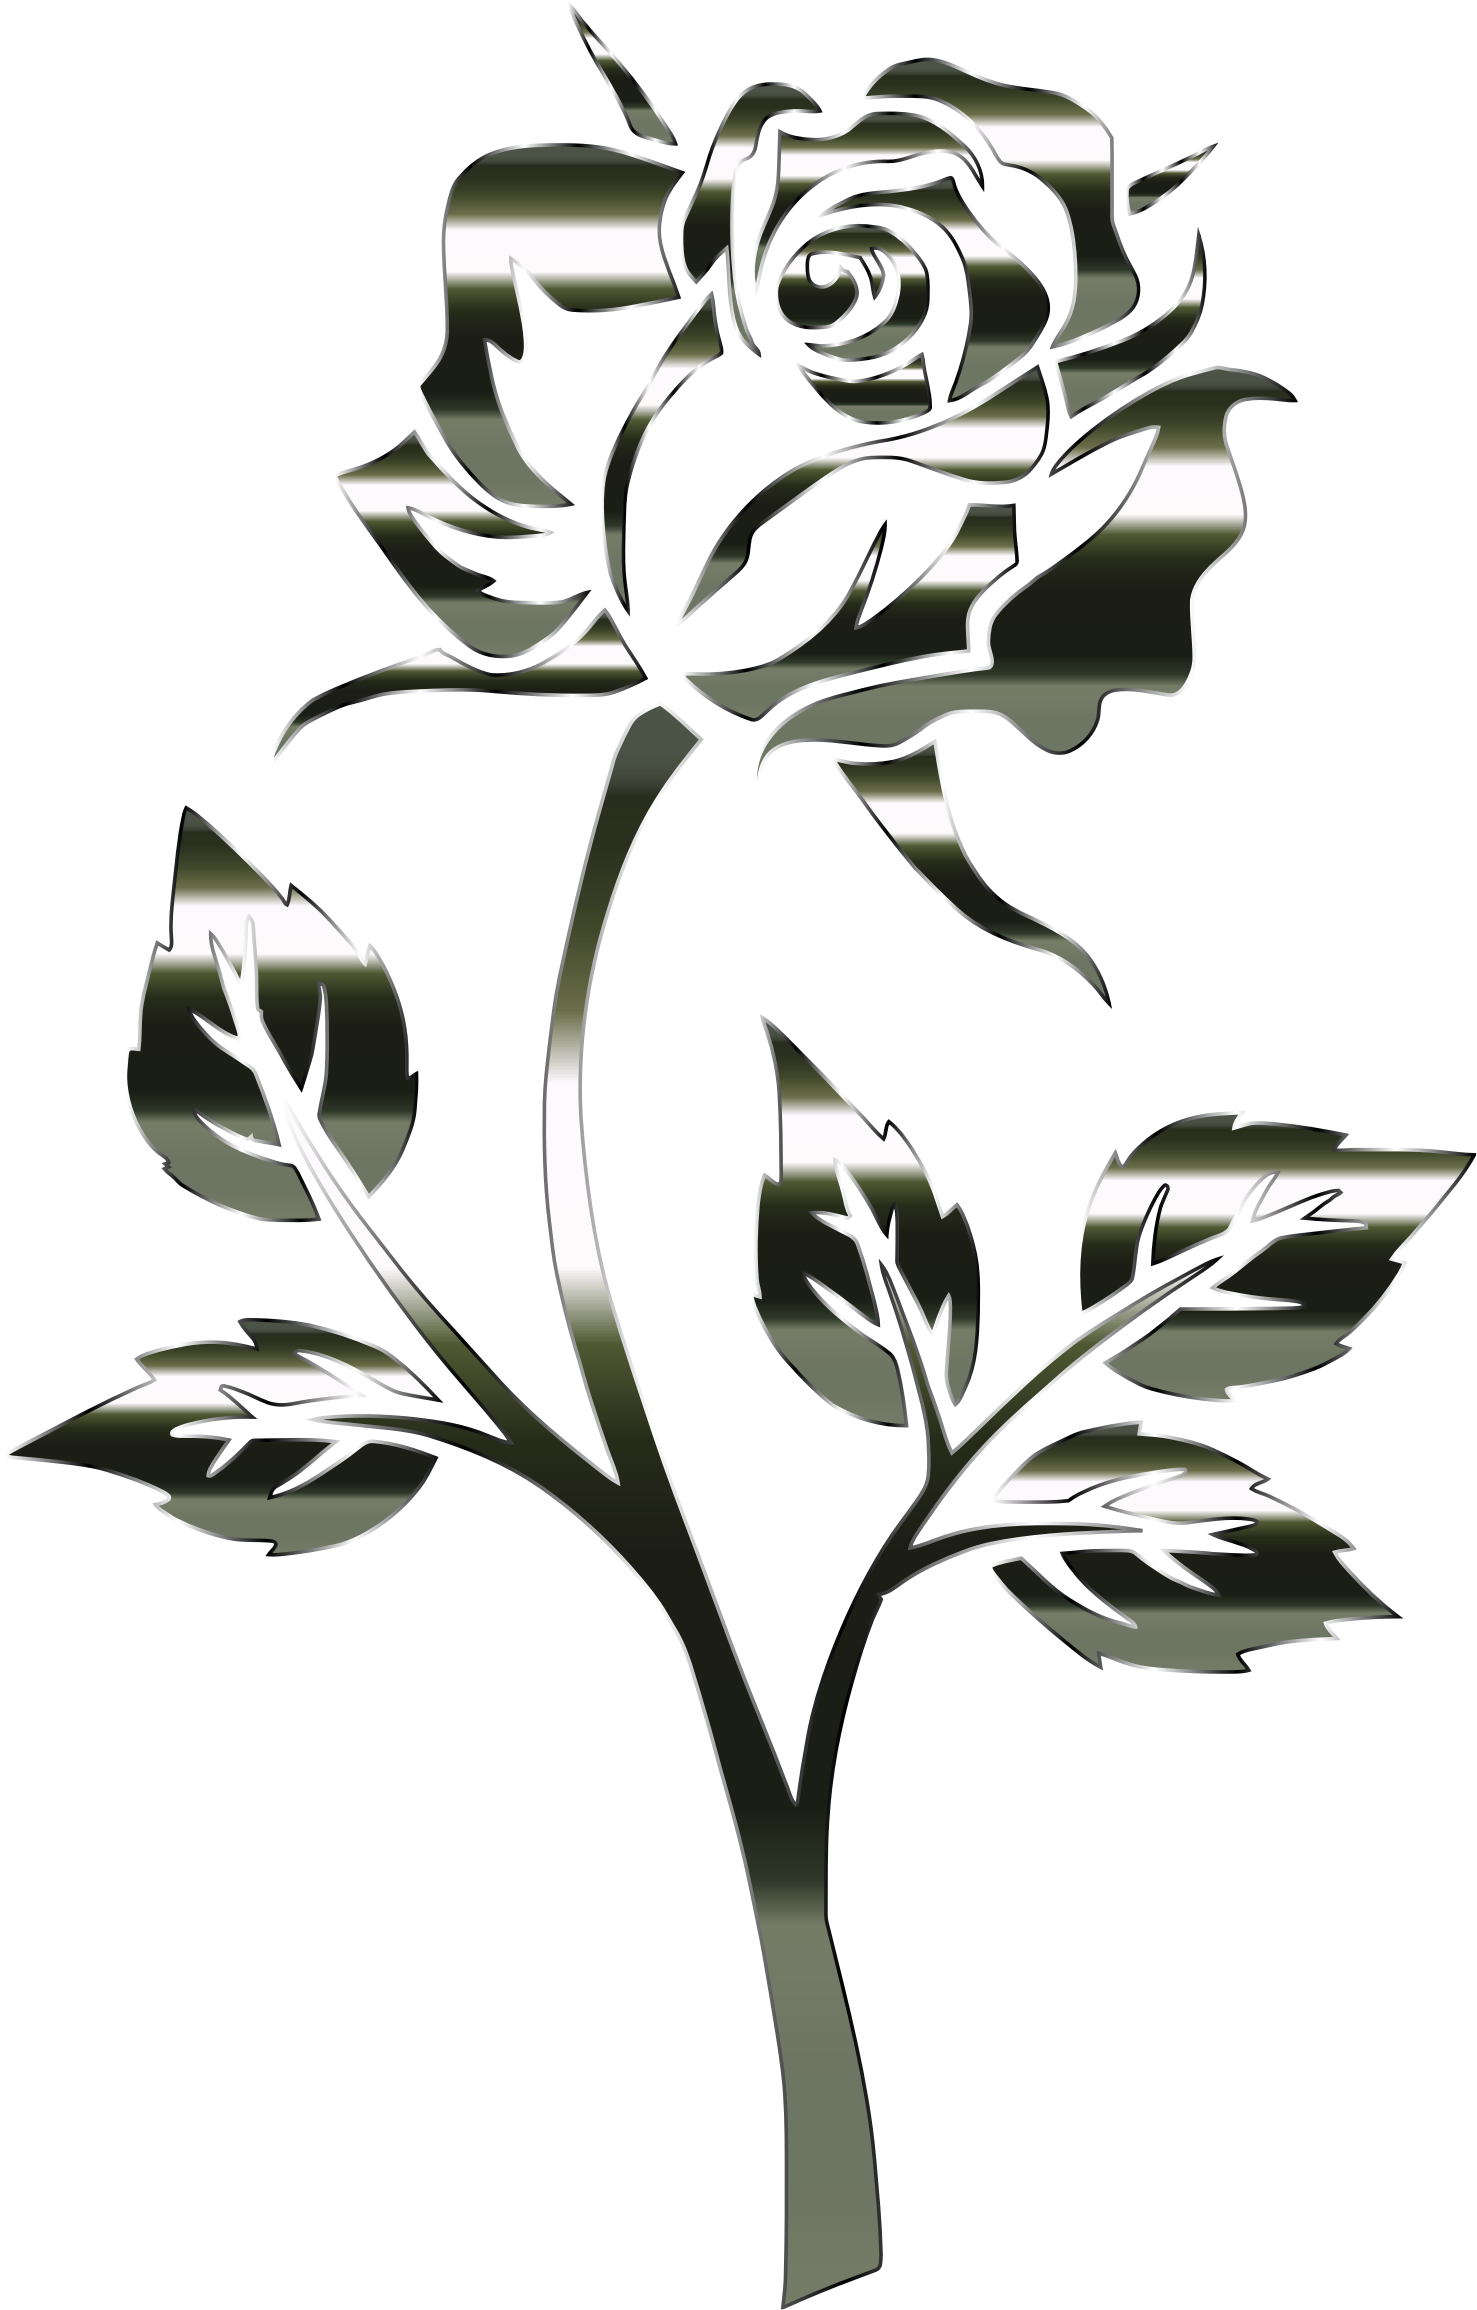 Clipart rose silhouette. Polished obsidian no background